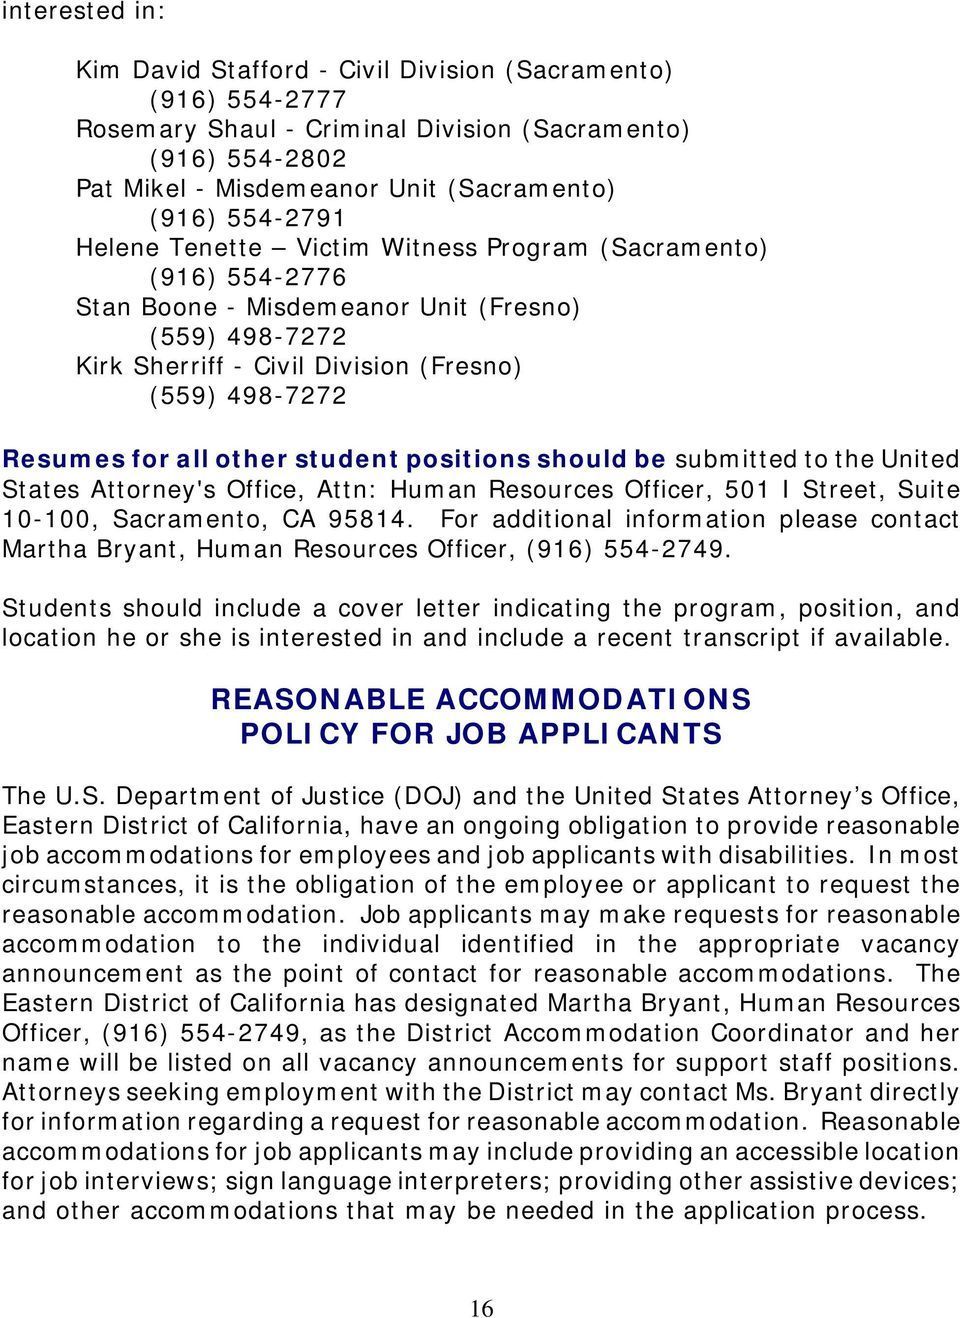 student positions should be submitted to the United States Attorney's Office, Attn: Human Resources Officer, 501 I Street, Suite 10-100, Sacramento, CA 95814.